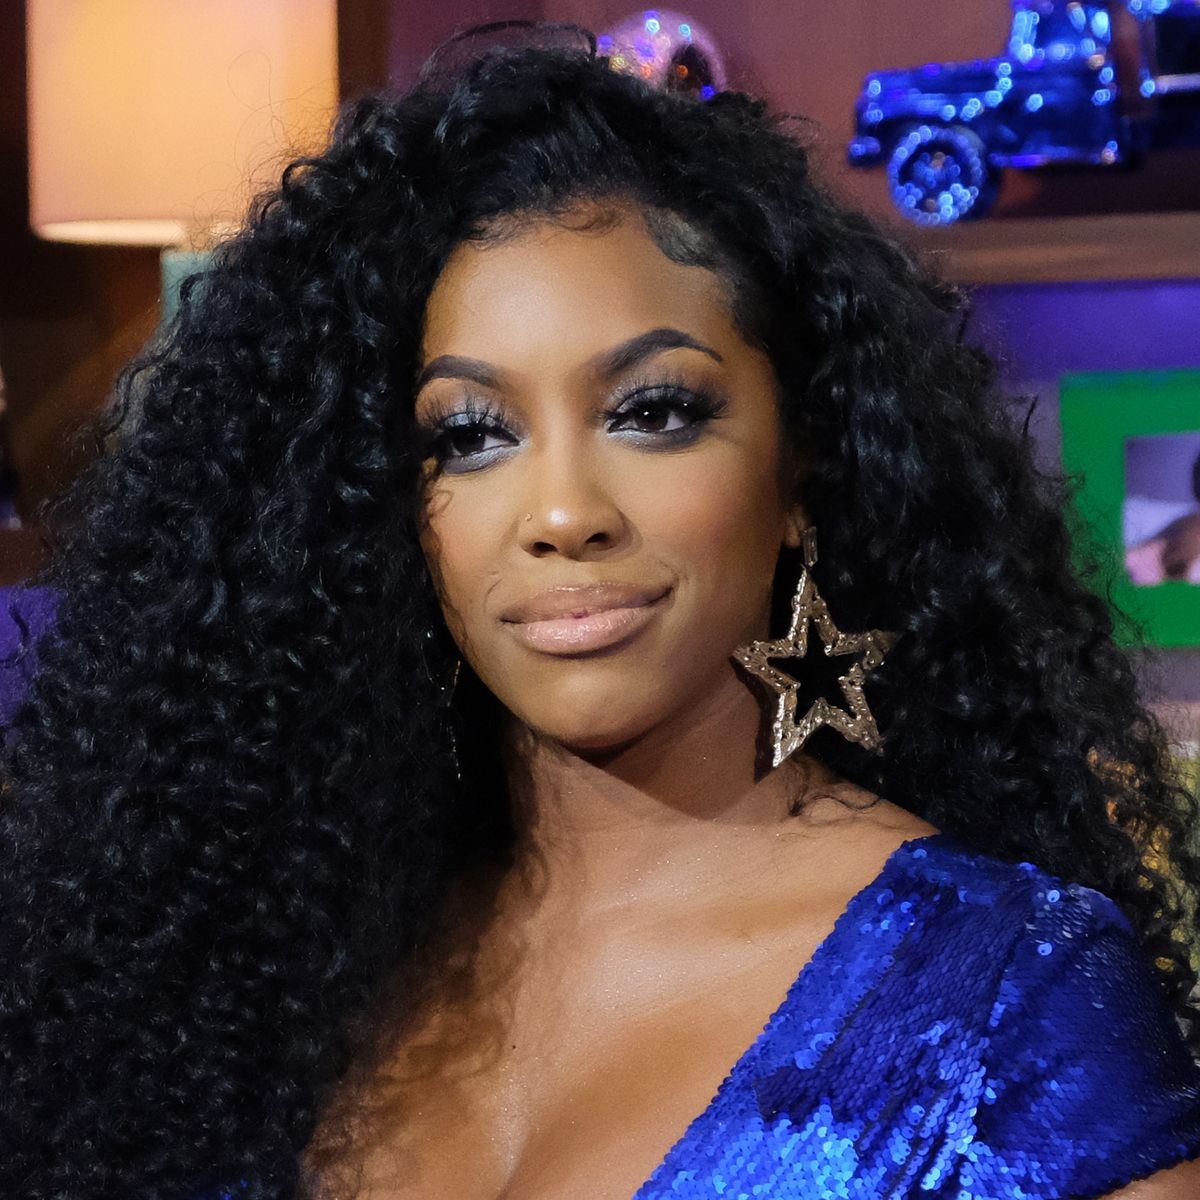 porsha-williams-has-something-powerful-coming-from-her-family-and-friends